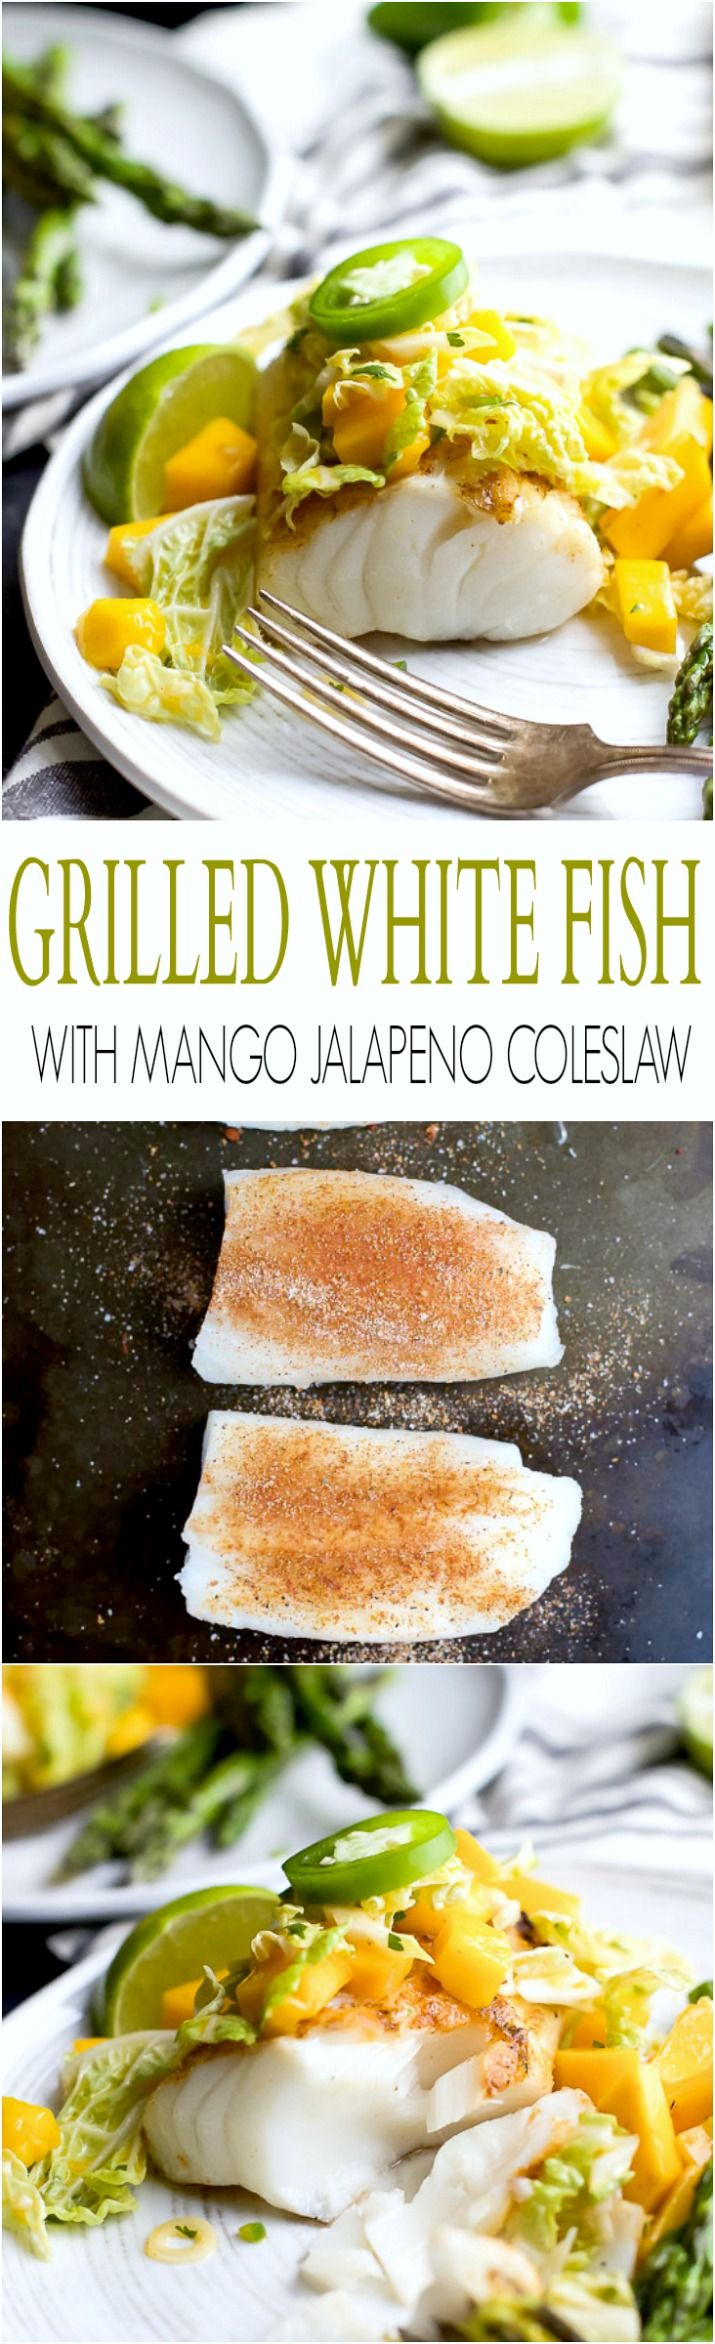 Grilled White Fish topped with a refreshing Mango Jalapeno Coleslaw that will blow more than your socks off! Incredible flavor, minimal ingredients with less than 20 minutes to prepare! | joyfulhealthyeats.com #paleo #glutenfree